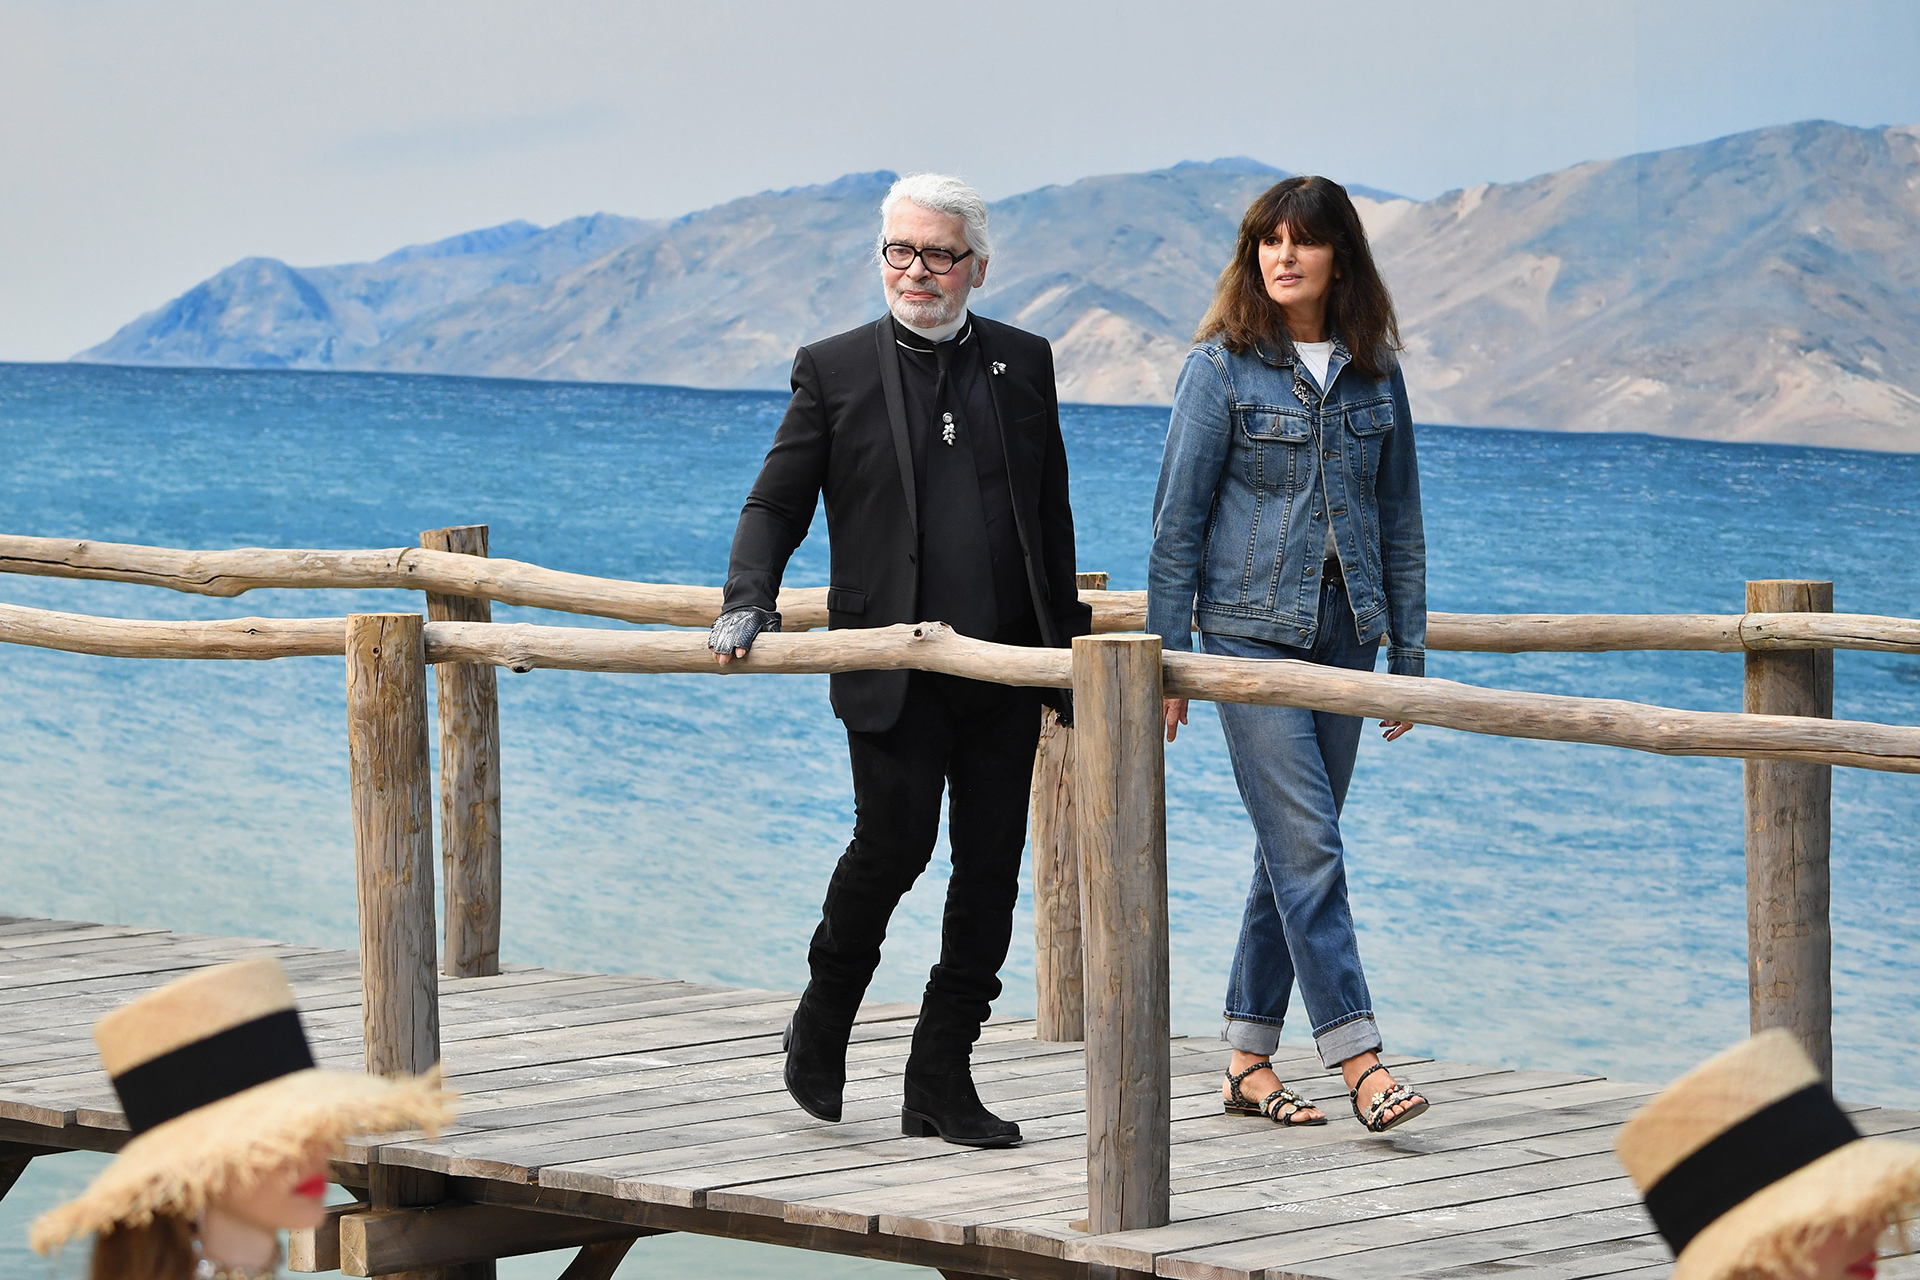 Karl Lagerfeld e Virginie Viard, no final bow da primavera/verão 2019 © Getty Images